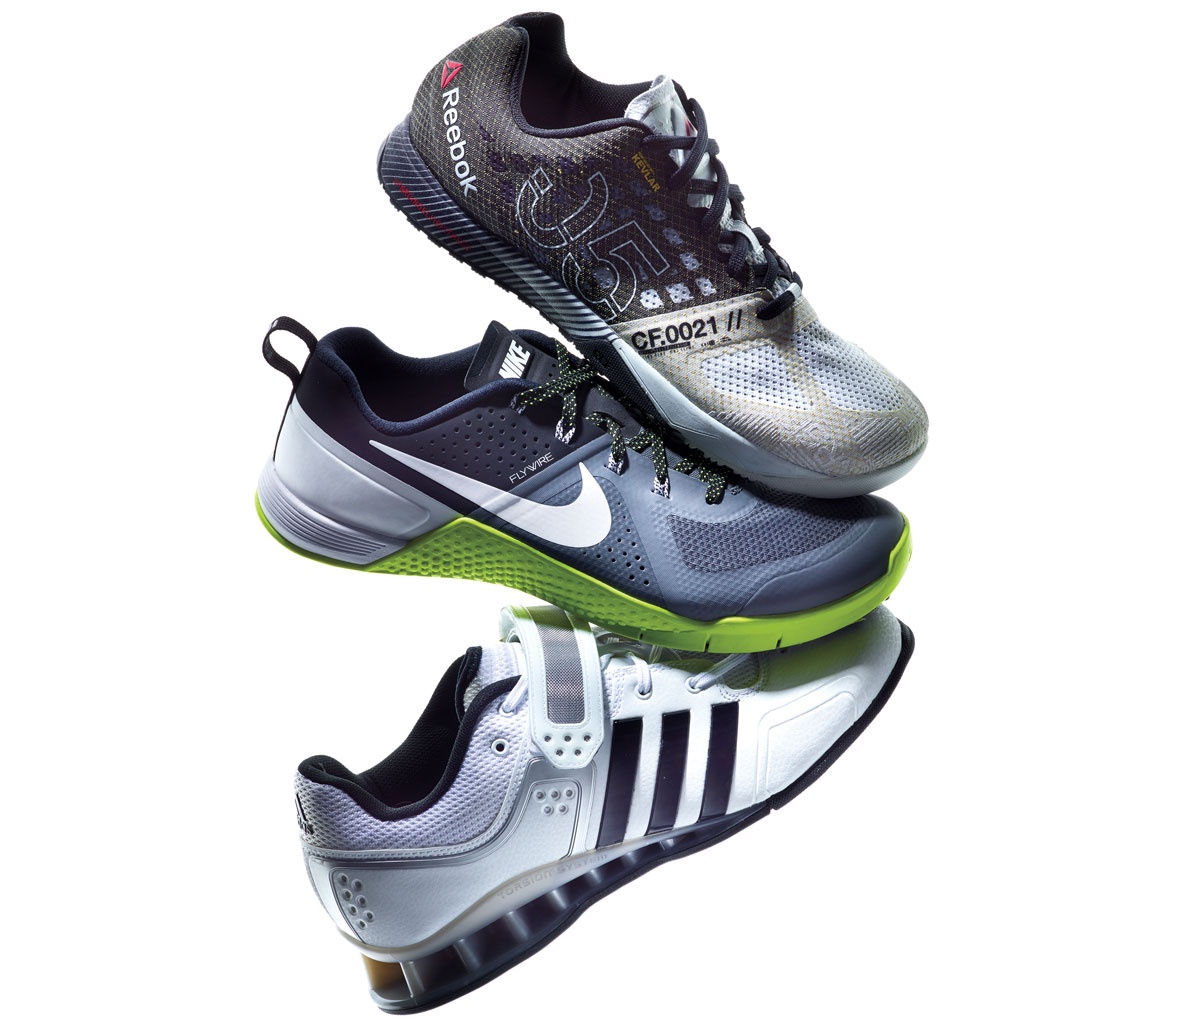 The Best CrossFit and Lifting Shoes